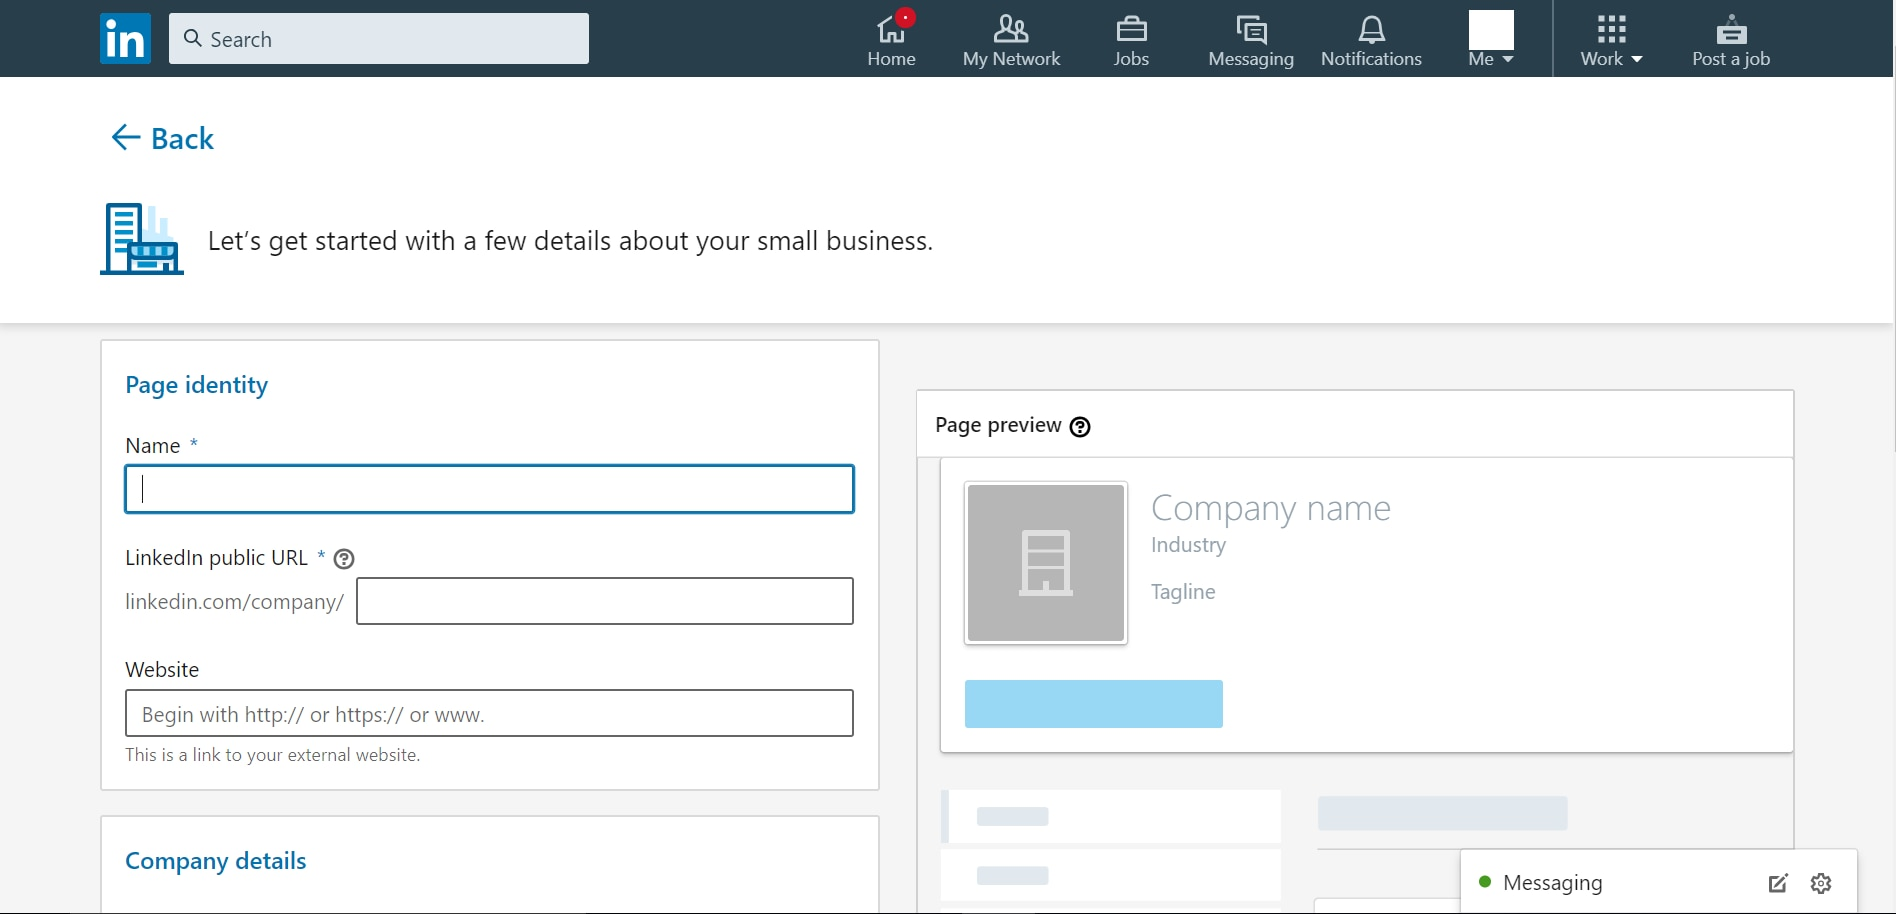 Next step in how to create a company page on LinkedIn is to fill the requisite information such as company name, URL, industry etc